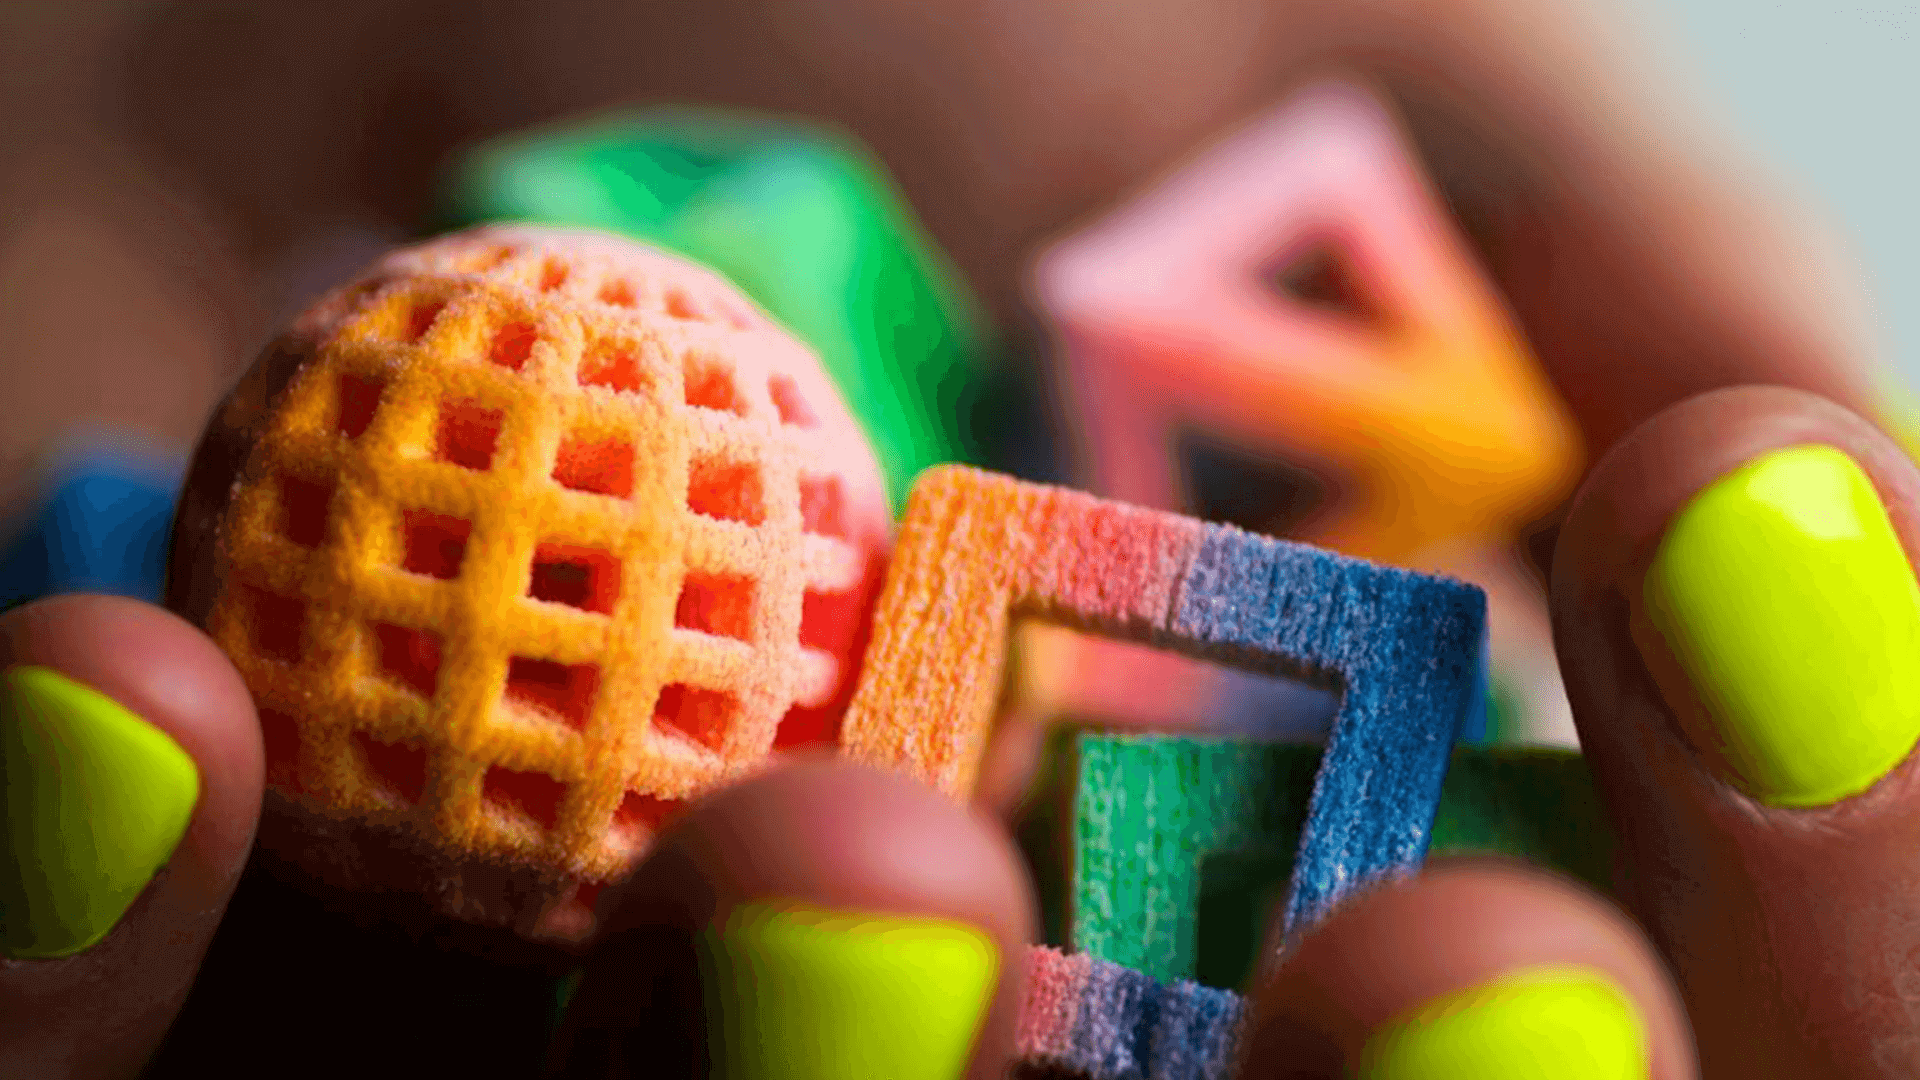 3D Systems Strikes Sweet Partnership With CSM to Develop 3D Food Printer | All3DP